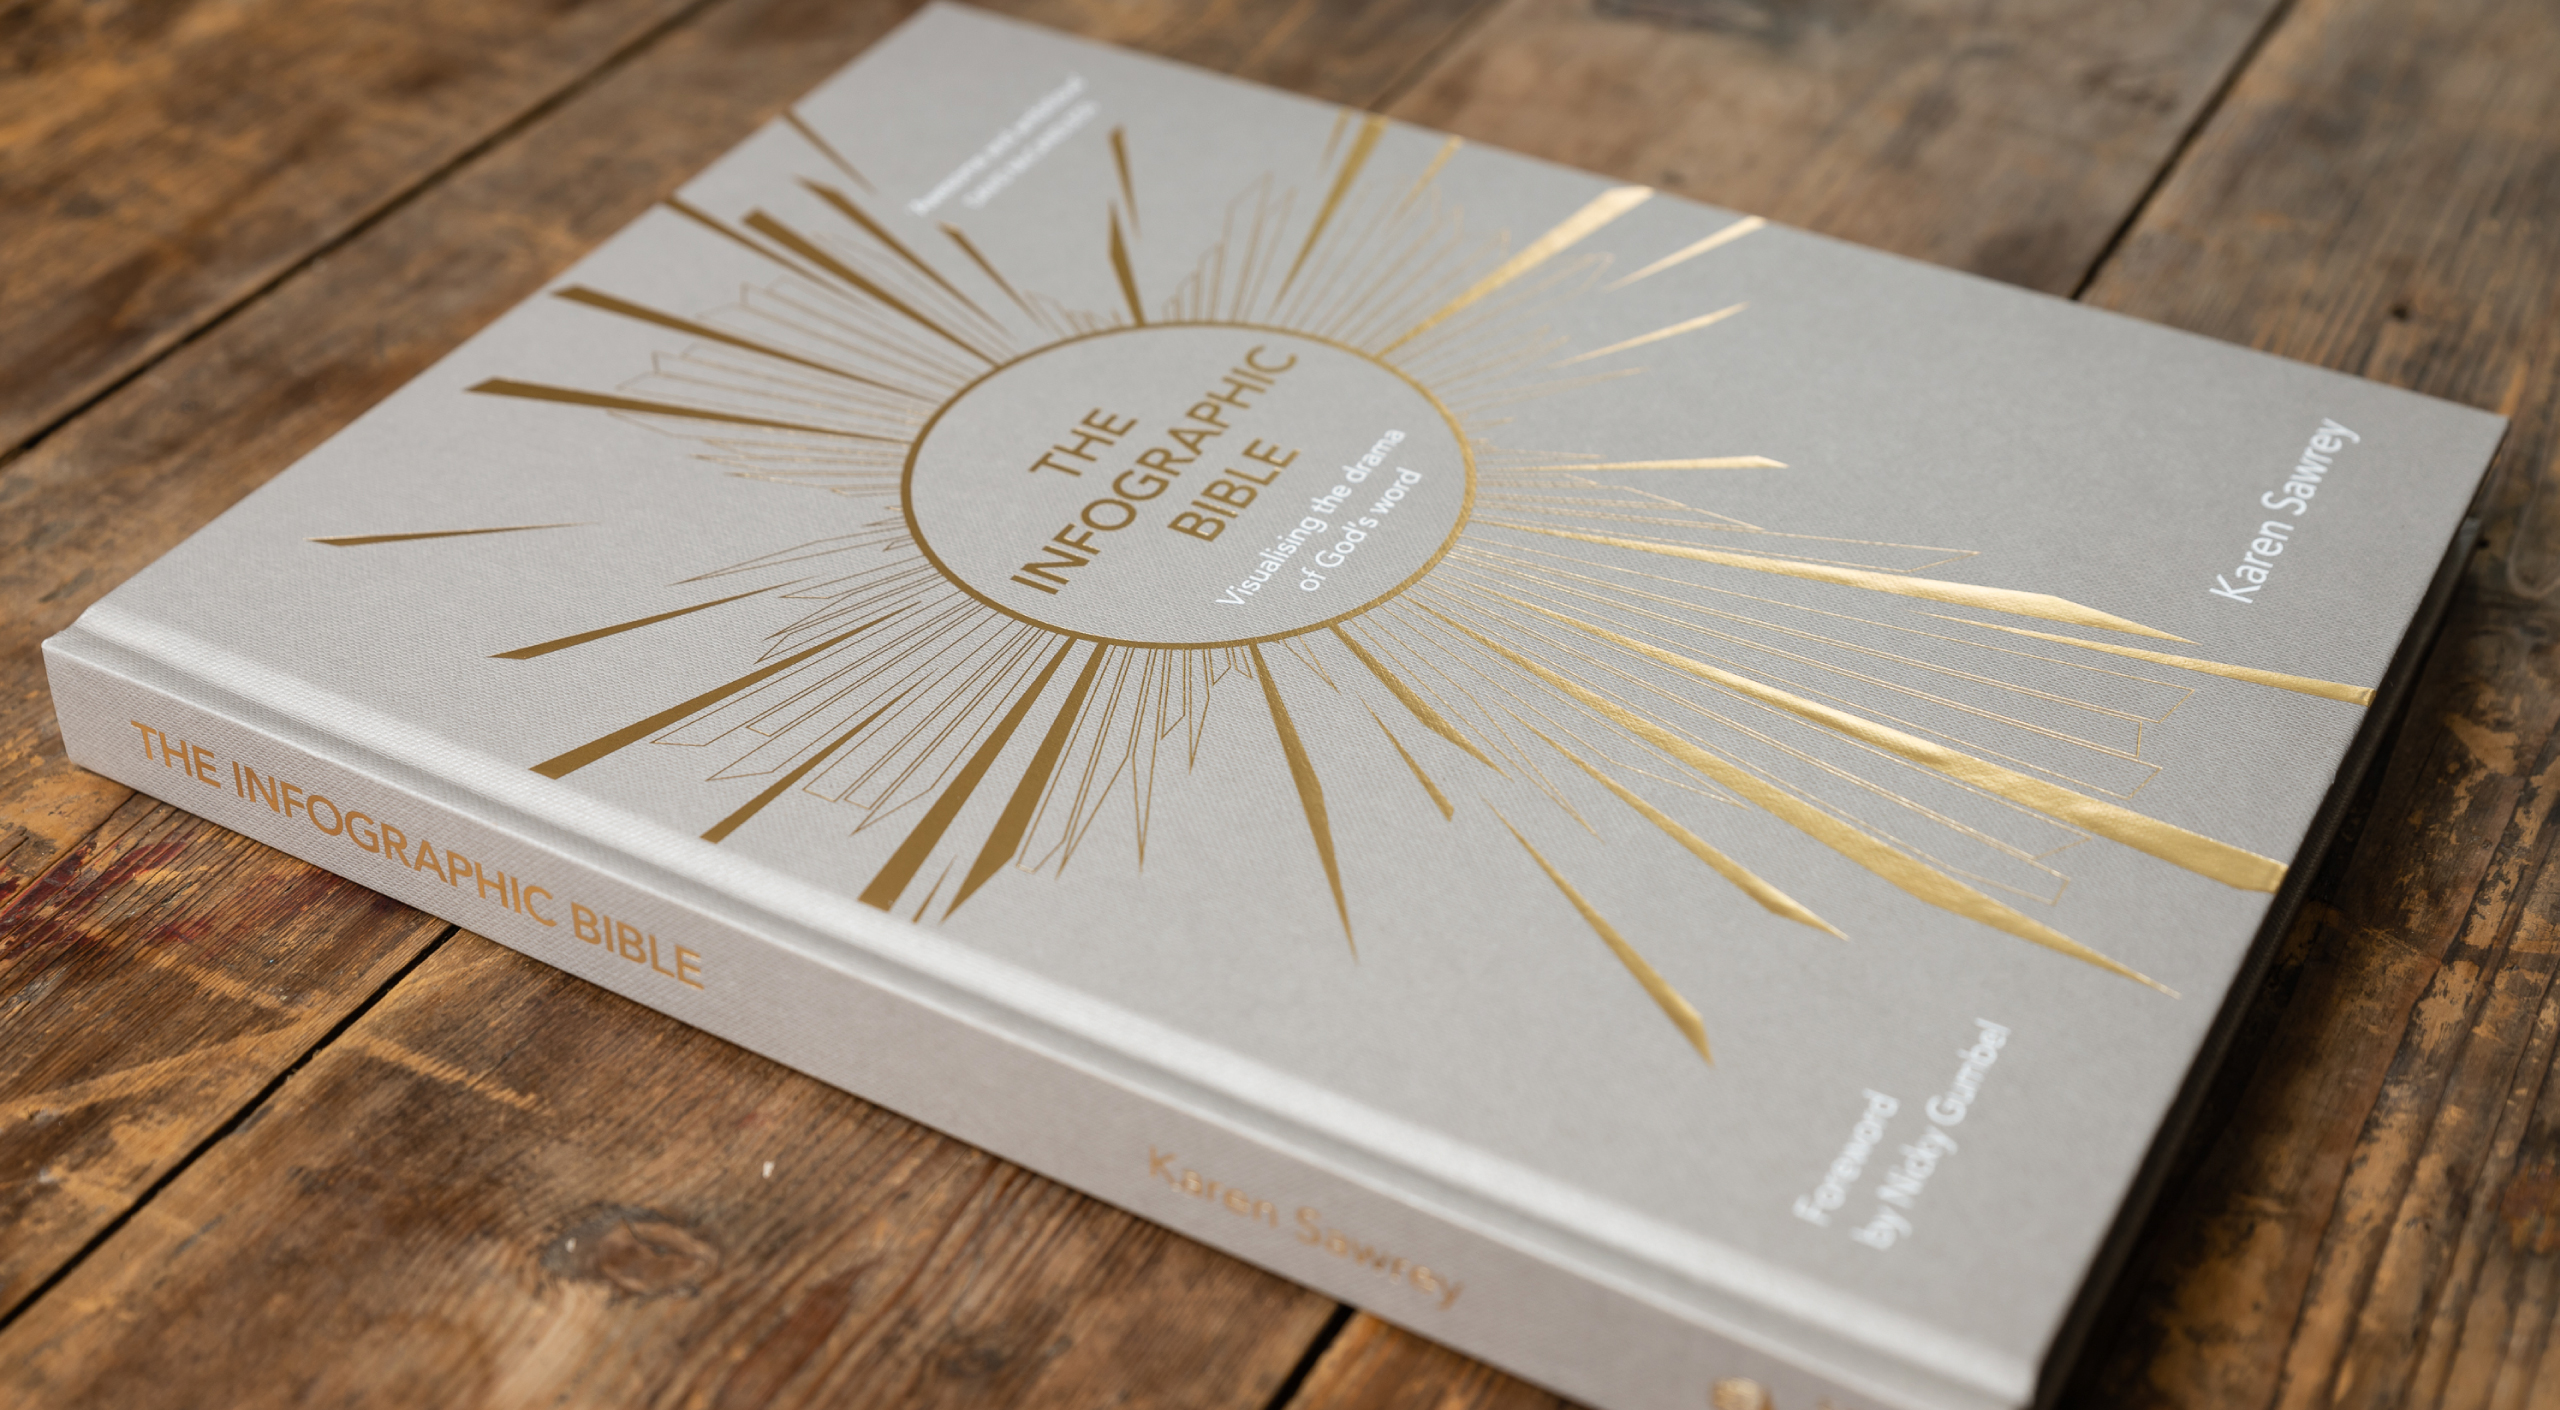 The Infographic Bible | An interview with author Karen Sawrey